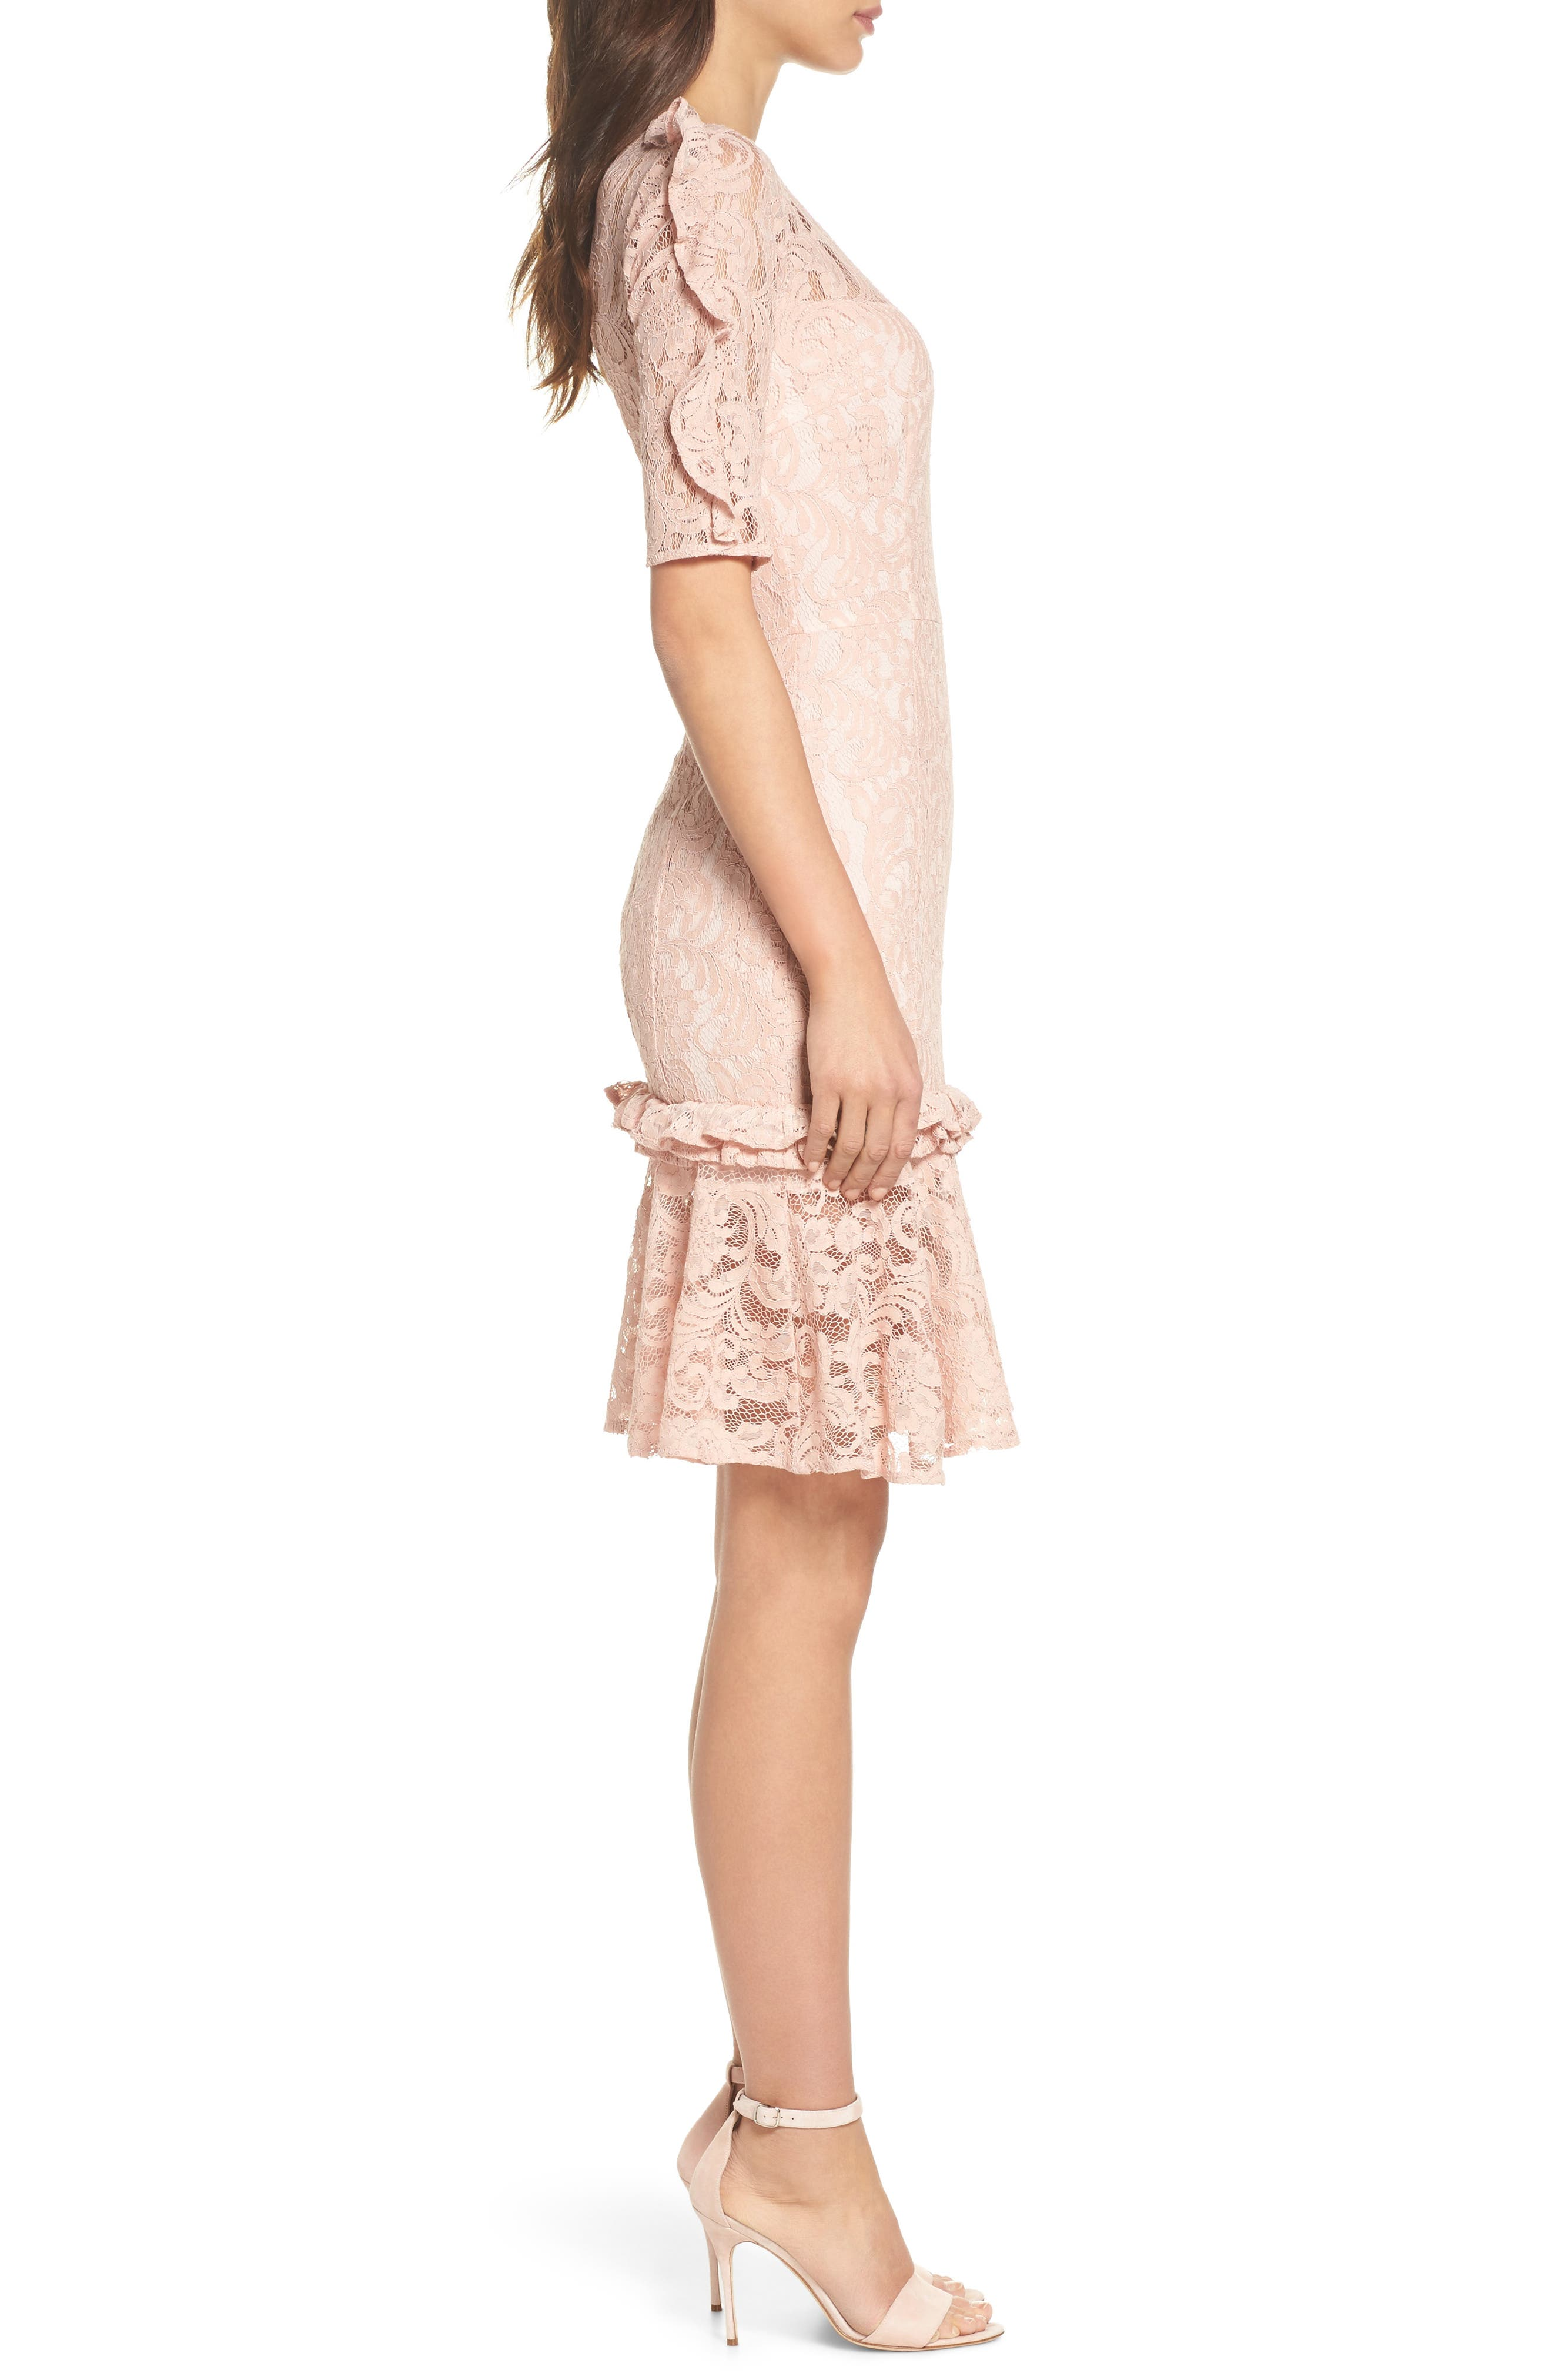 COOPER ST,                             Hushed Dove Lace Dress,                             Alternate thumbnail 3, color,                             650